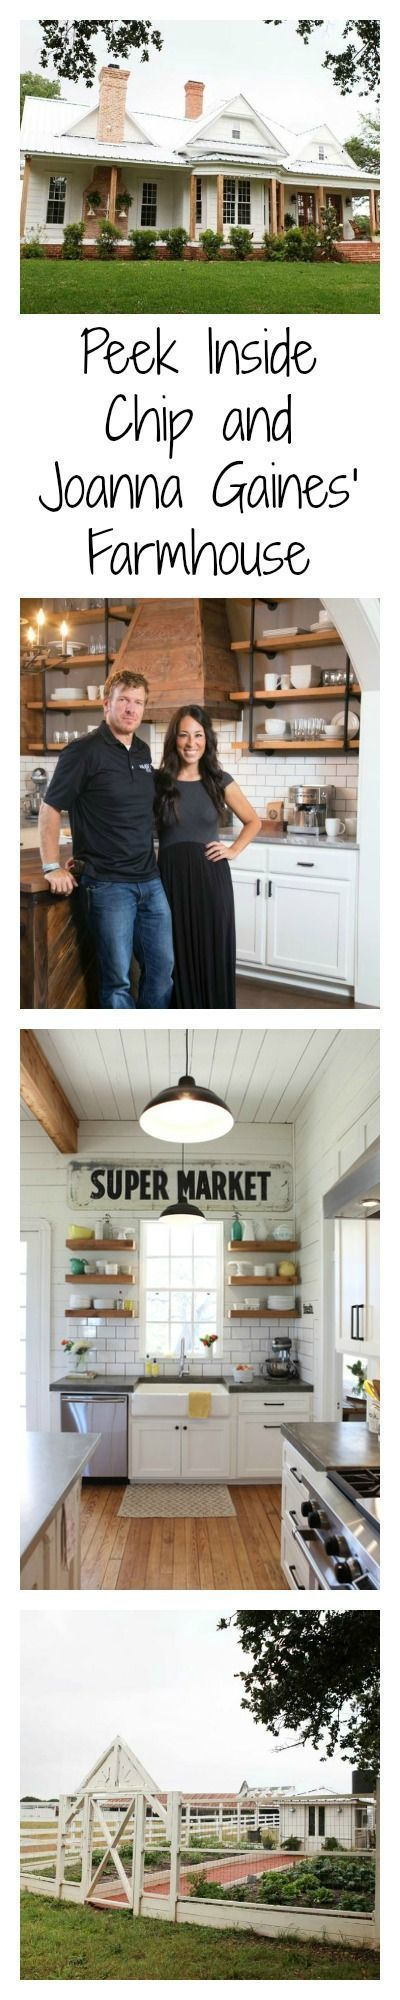 See the beautiful farmhouse of HGTV's Fixer Upper stars Chip and Joanna Gaines like never before! You'll find lots of inspiration for your home!